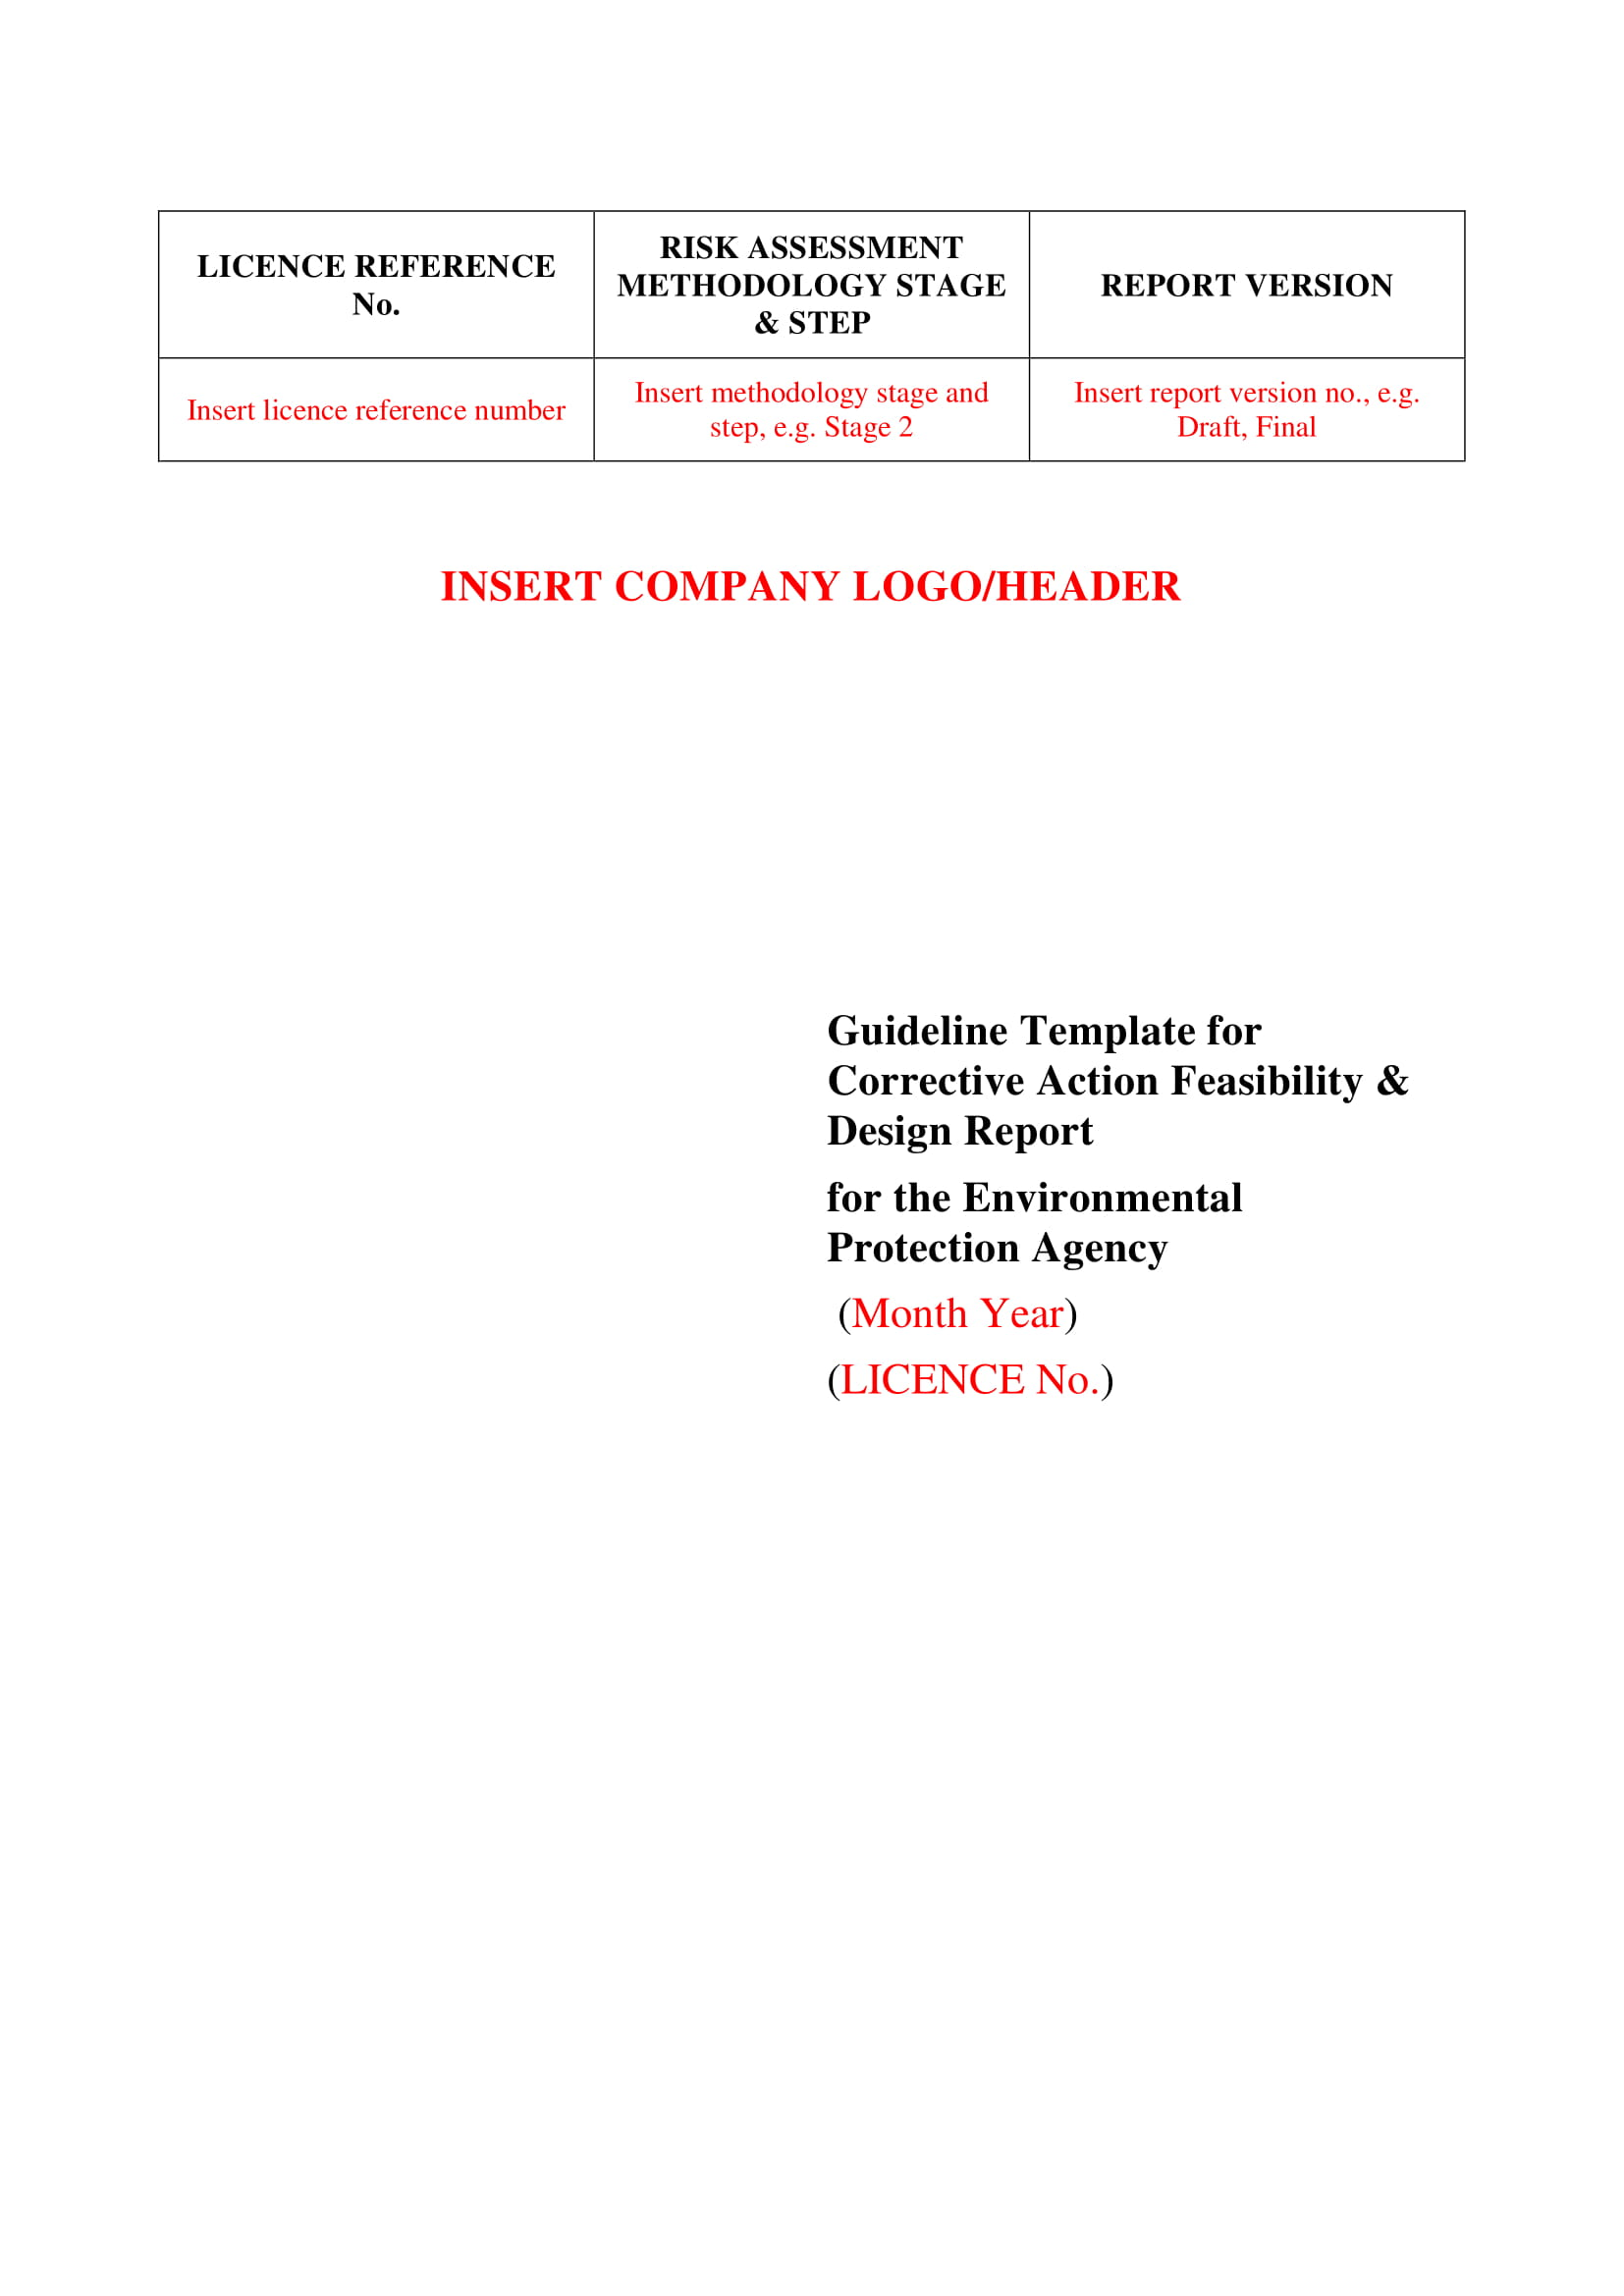 corrective action feasibility and design report example 01